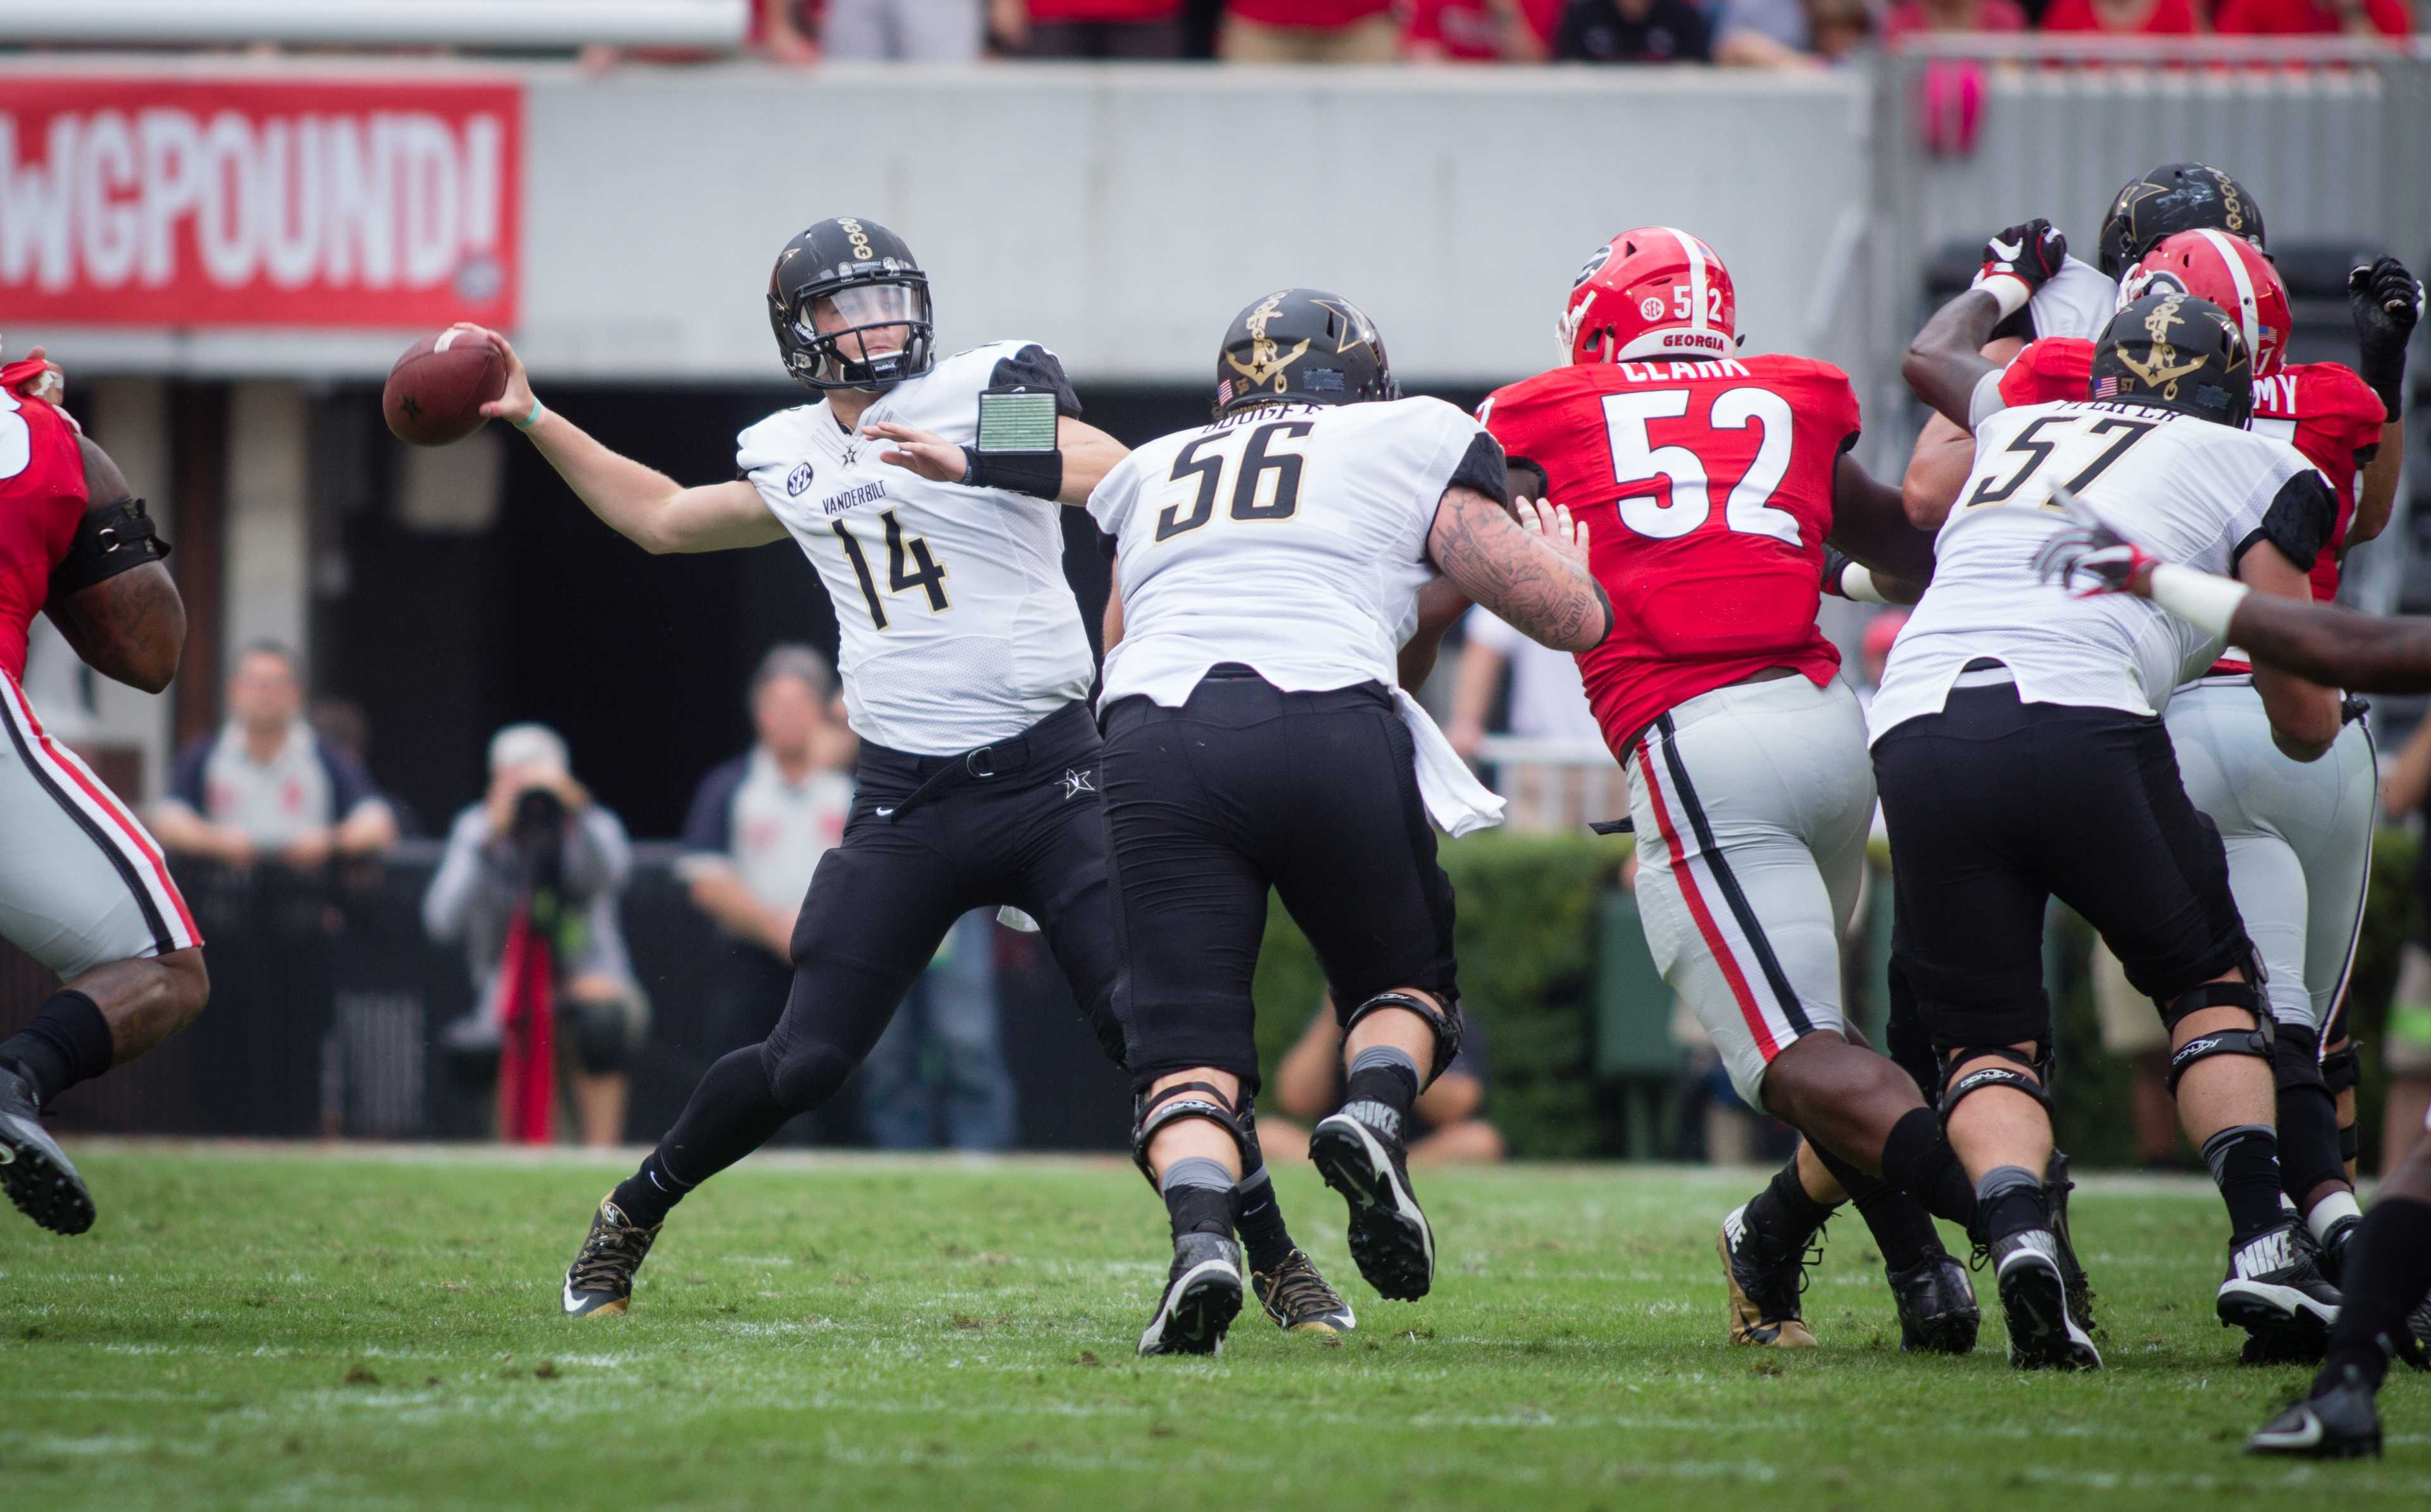 October 15th, 2016 – Kyle Shurmer passes during the Commodores' 17-16 win against the University of Georgia in Sanford Stadium Saturday afternoon. Credit: Blake Dover